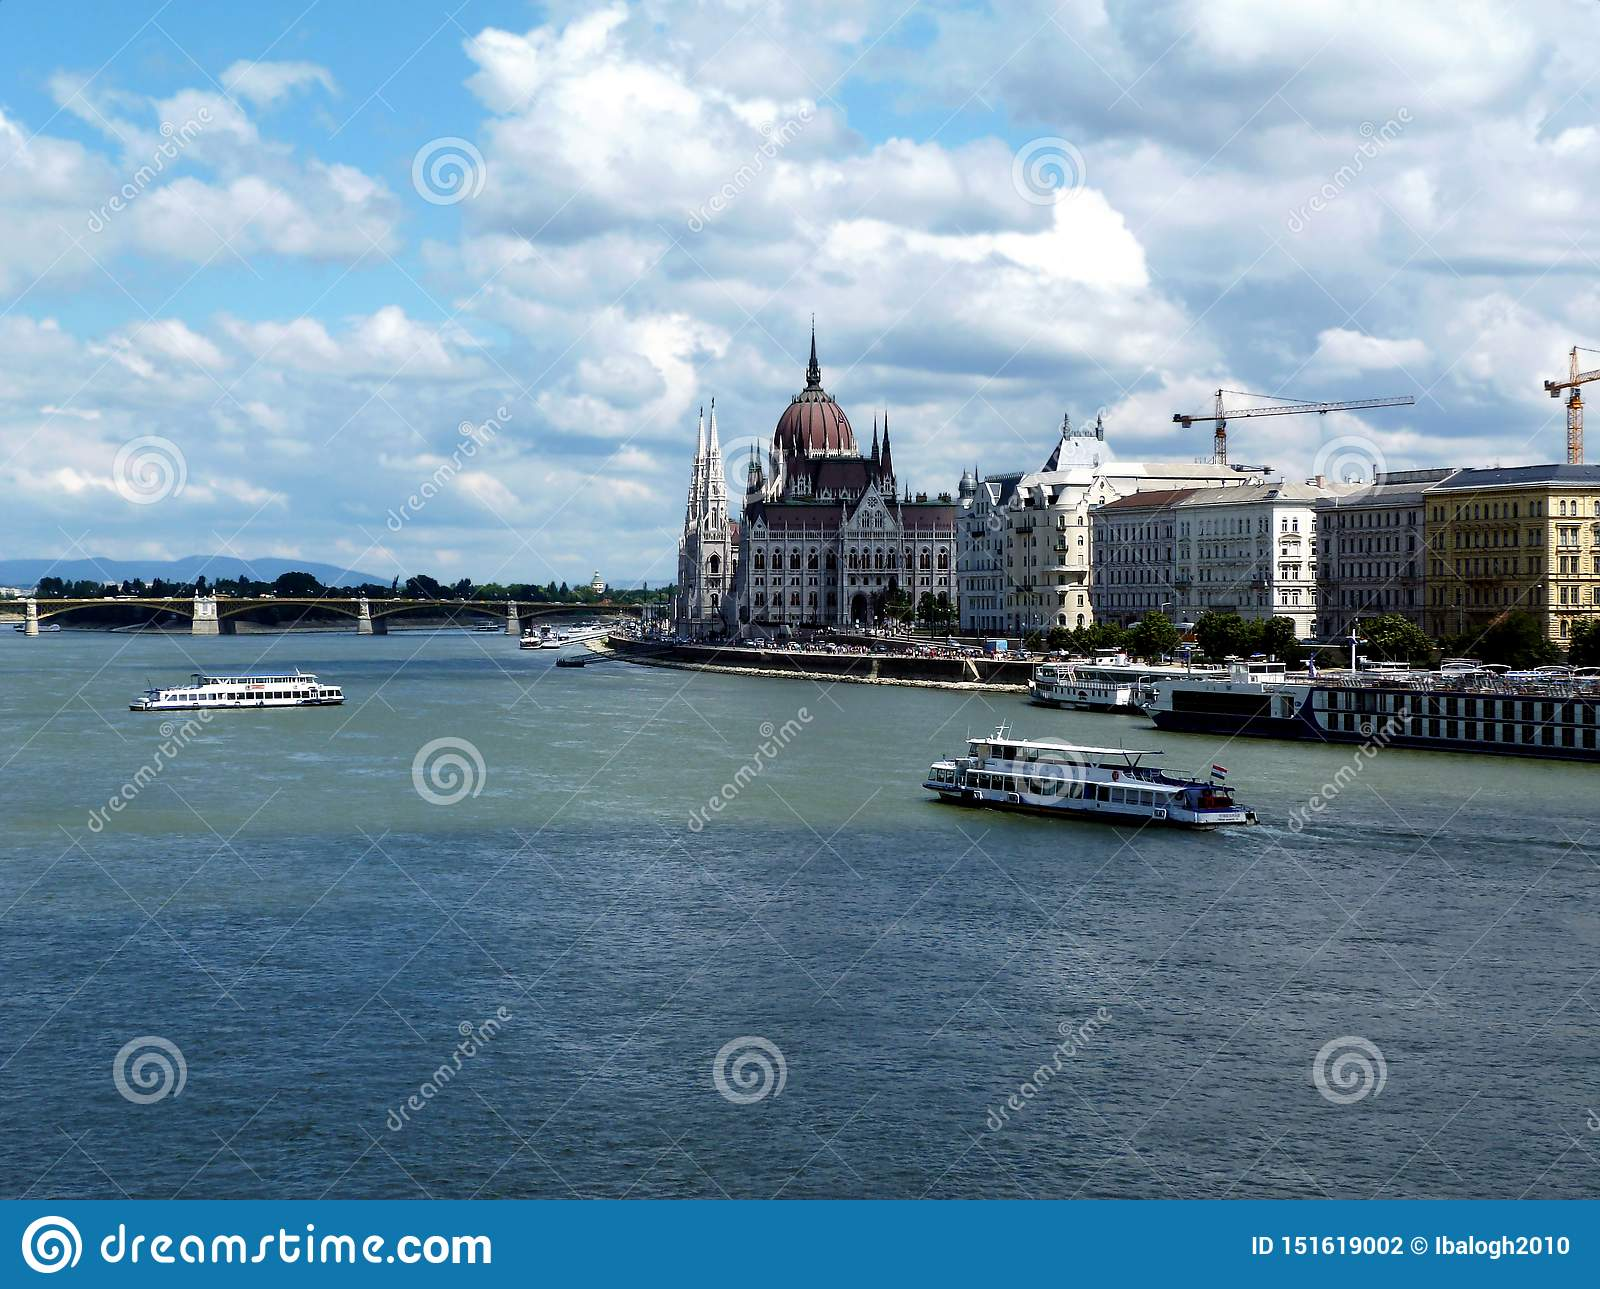 Hungarian Parliament and the Danube in panoramic landscape with white tour boats